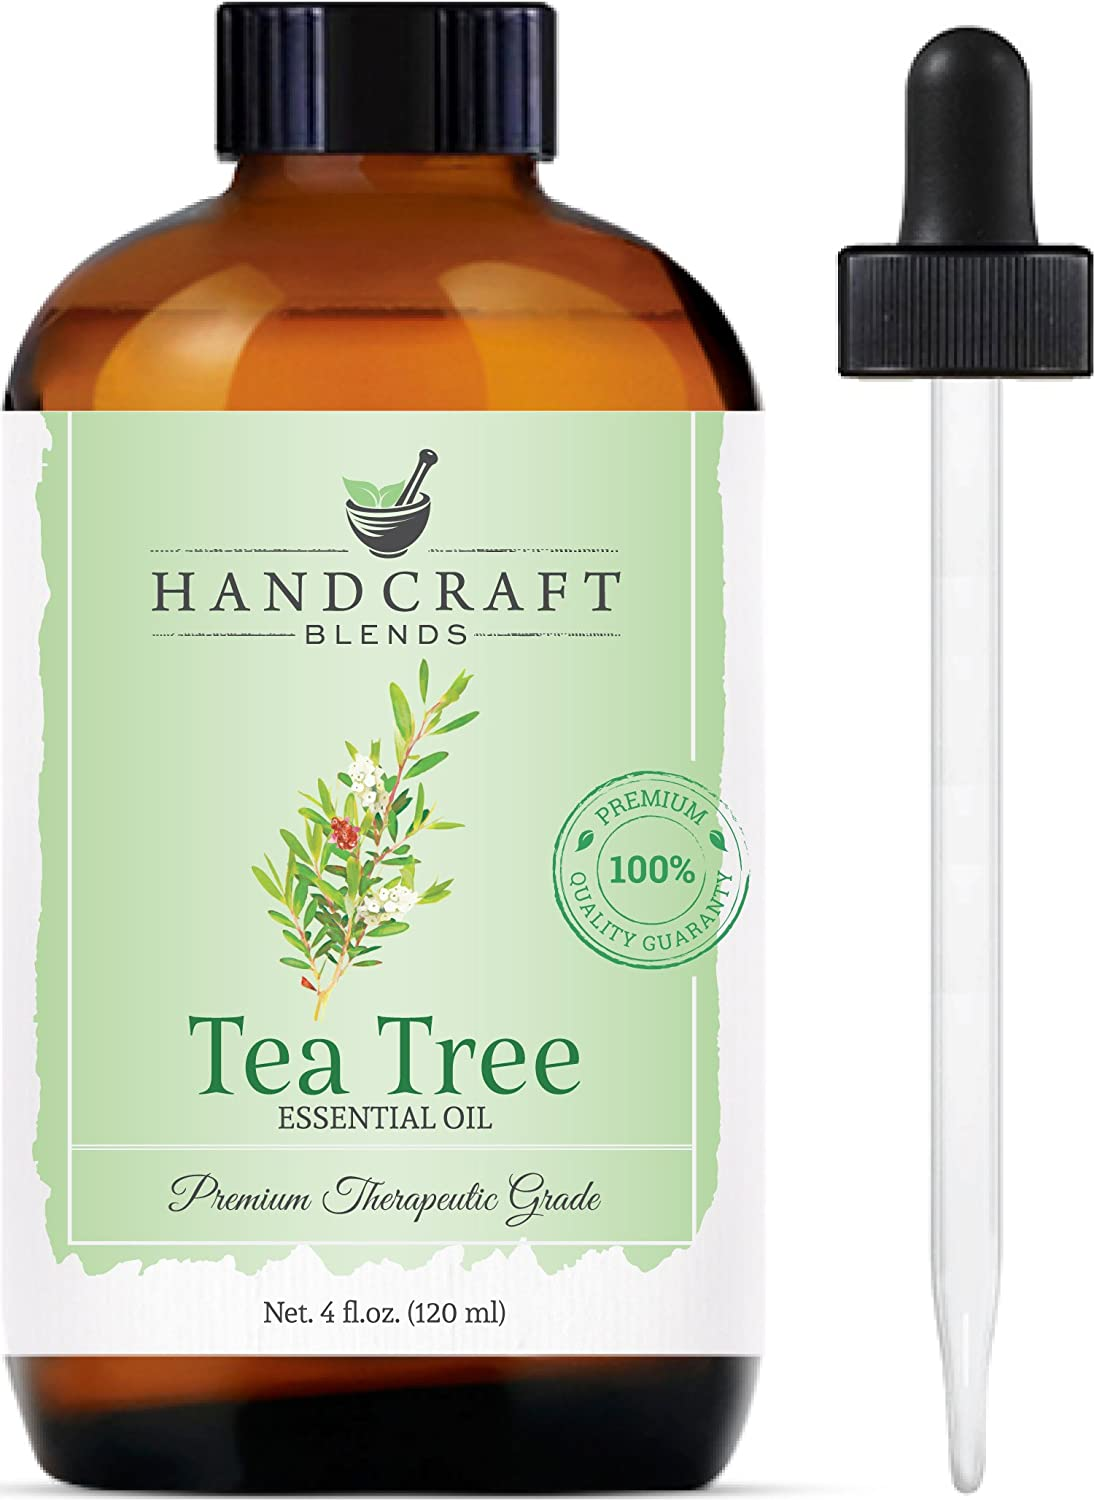 Handcraft Tea Tree Essential Oil - 100% Pure and Natural - Premium Therapeutic Grade with Premium Glass Dropper